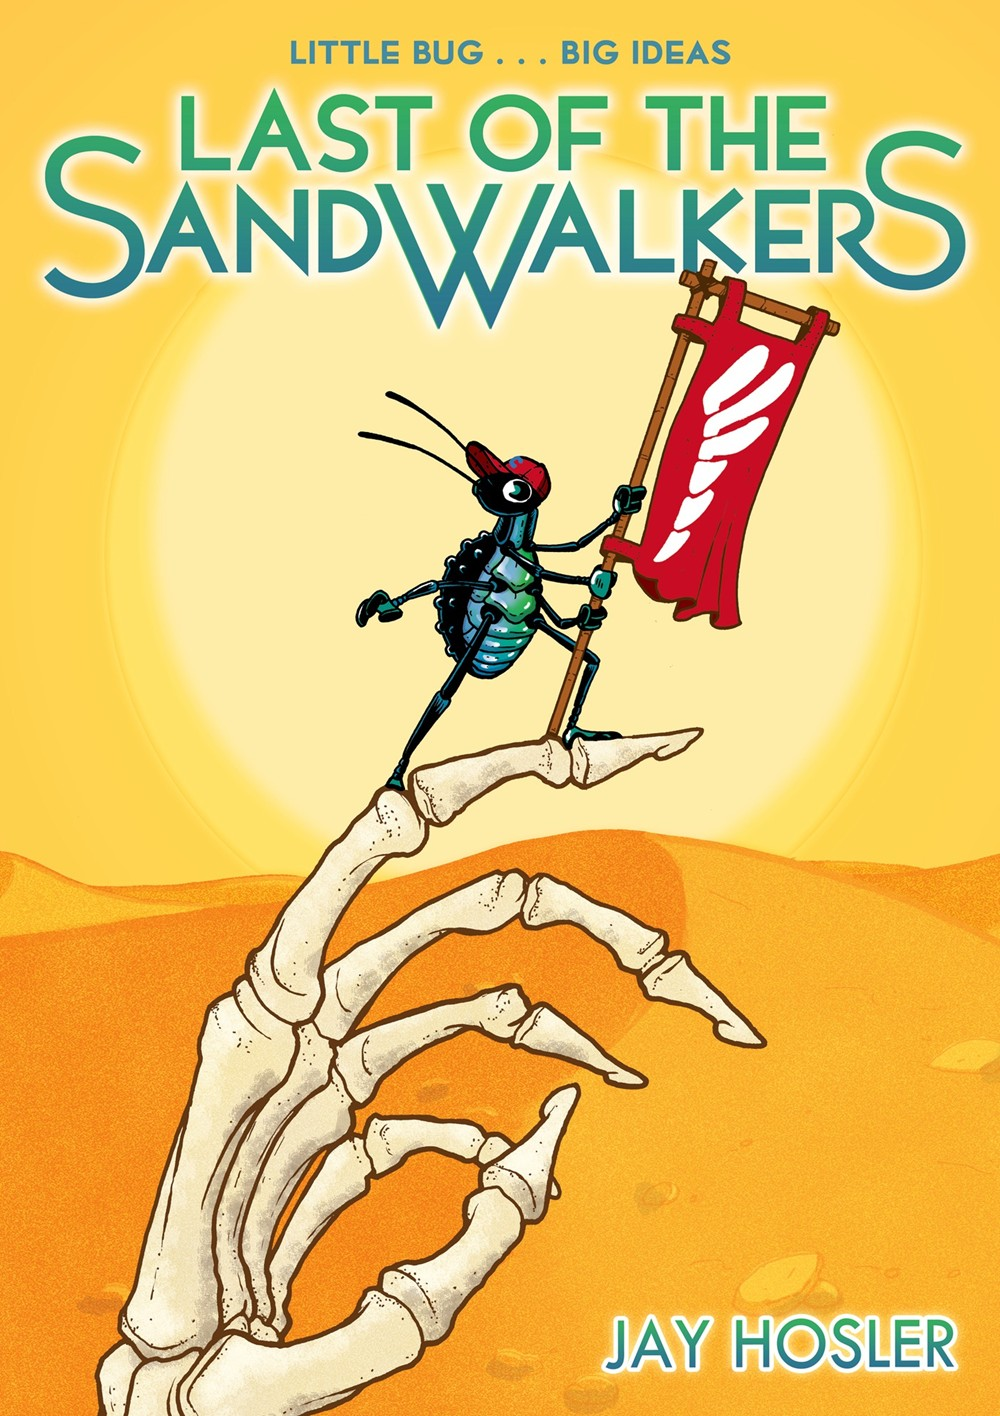 Last of the Sand Walkers by Jay Hosler